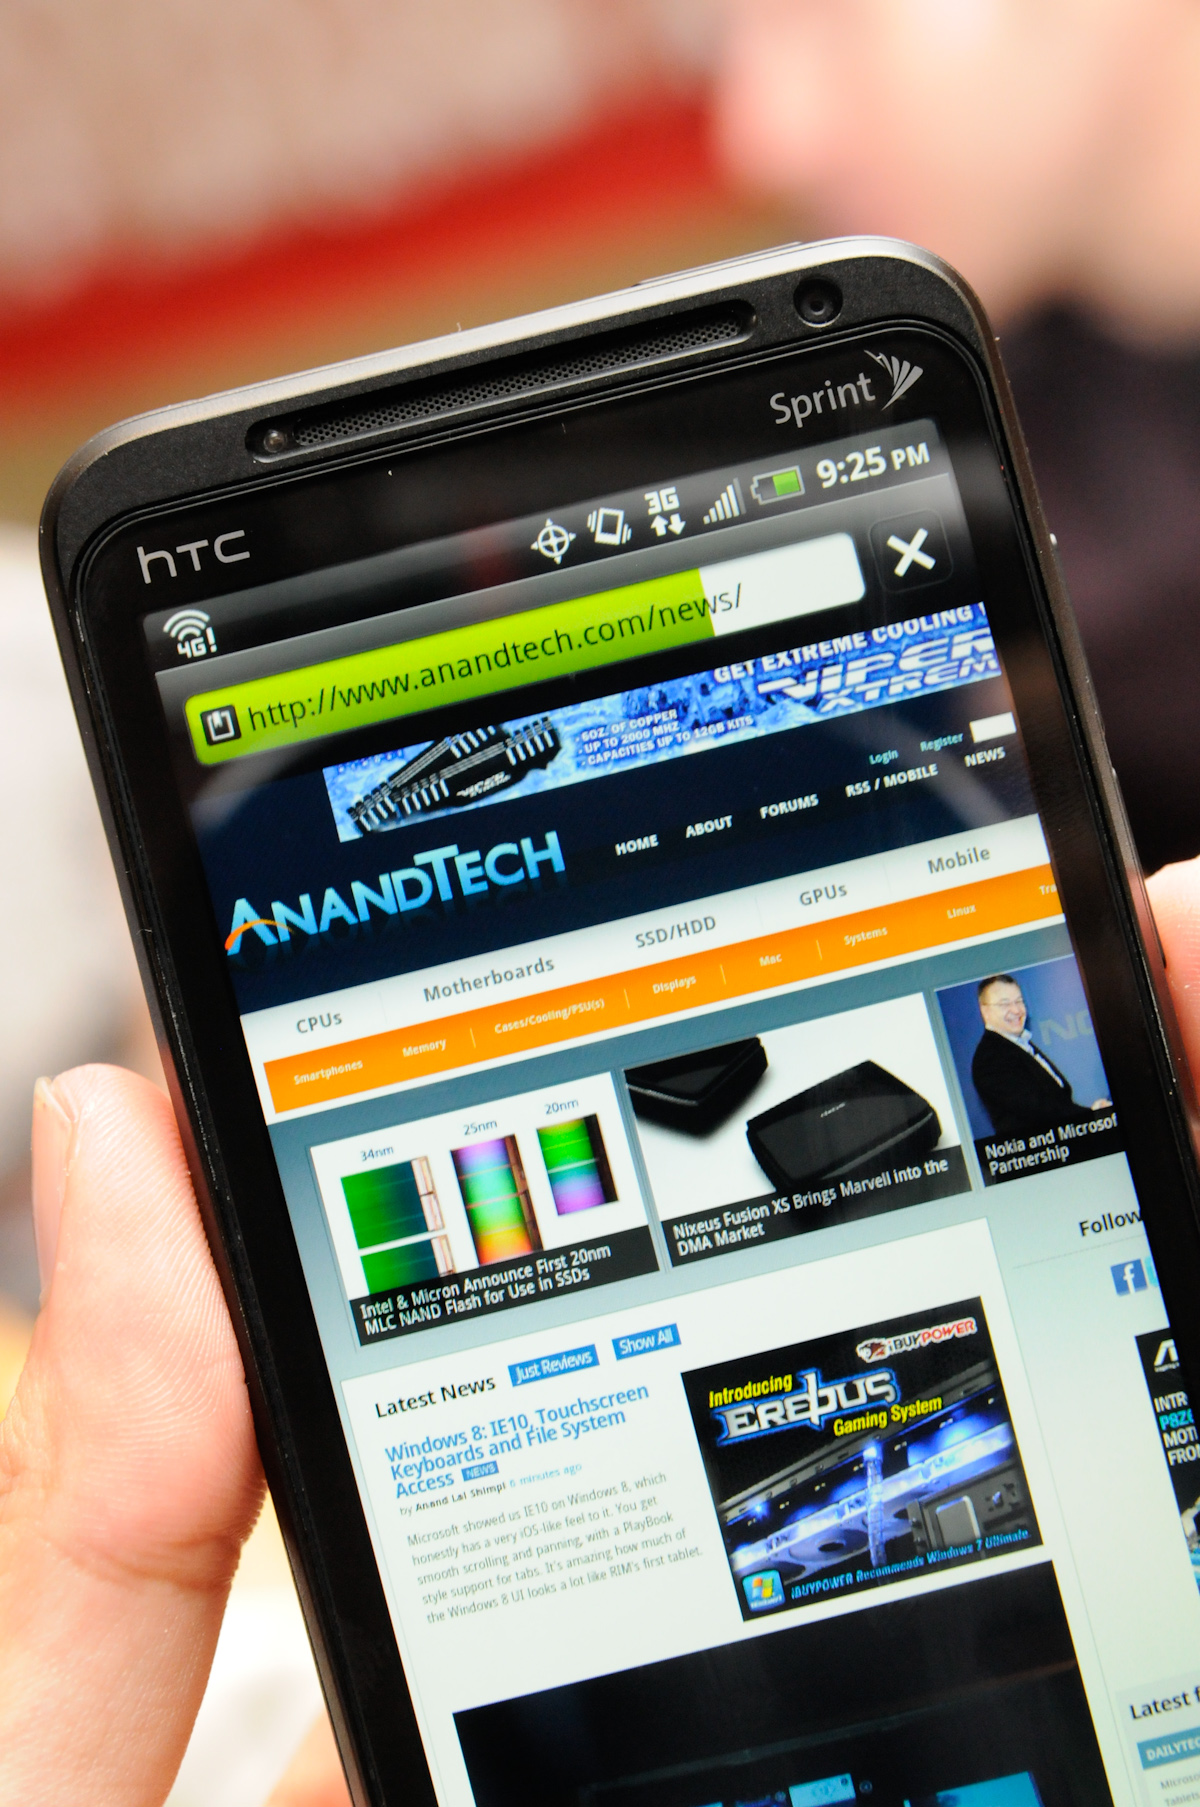 Hands on and Benchmarks of two MSM8x60 Phones - HTC Sensation 4G and